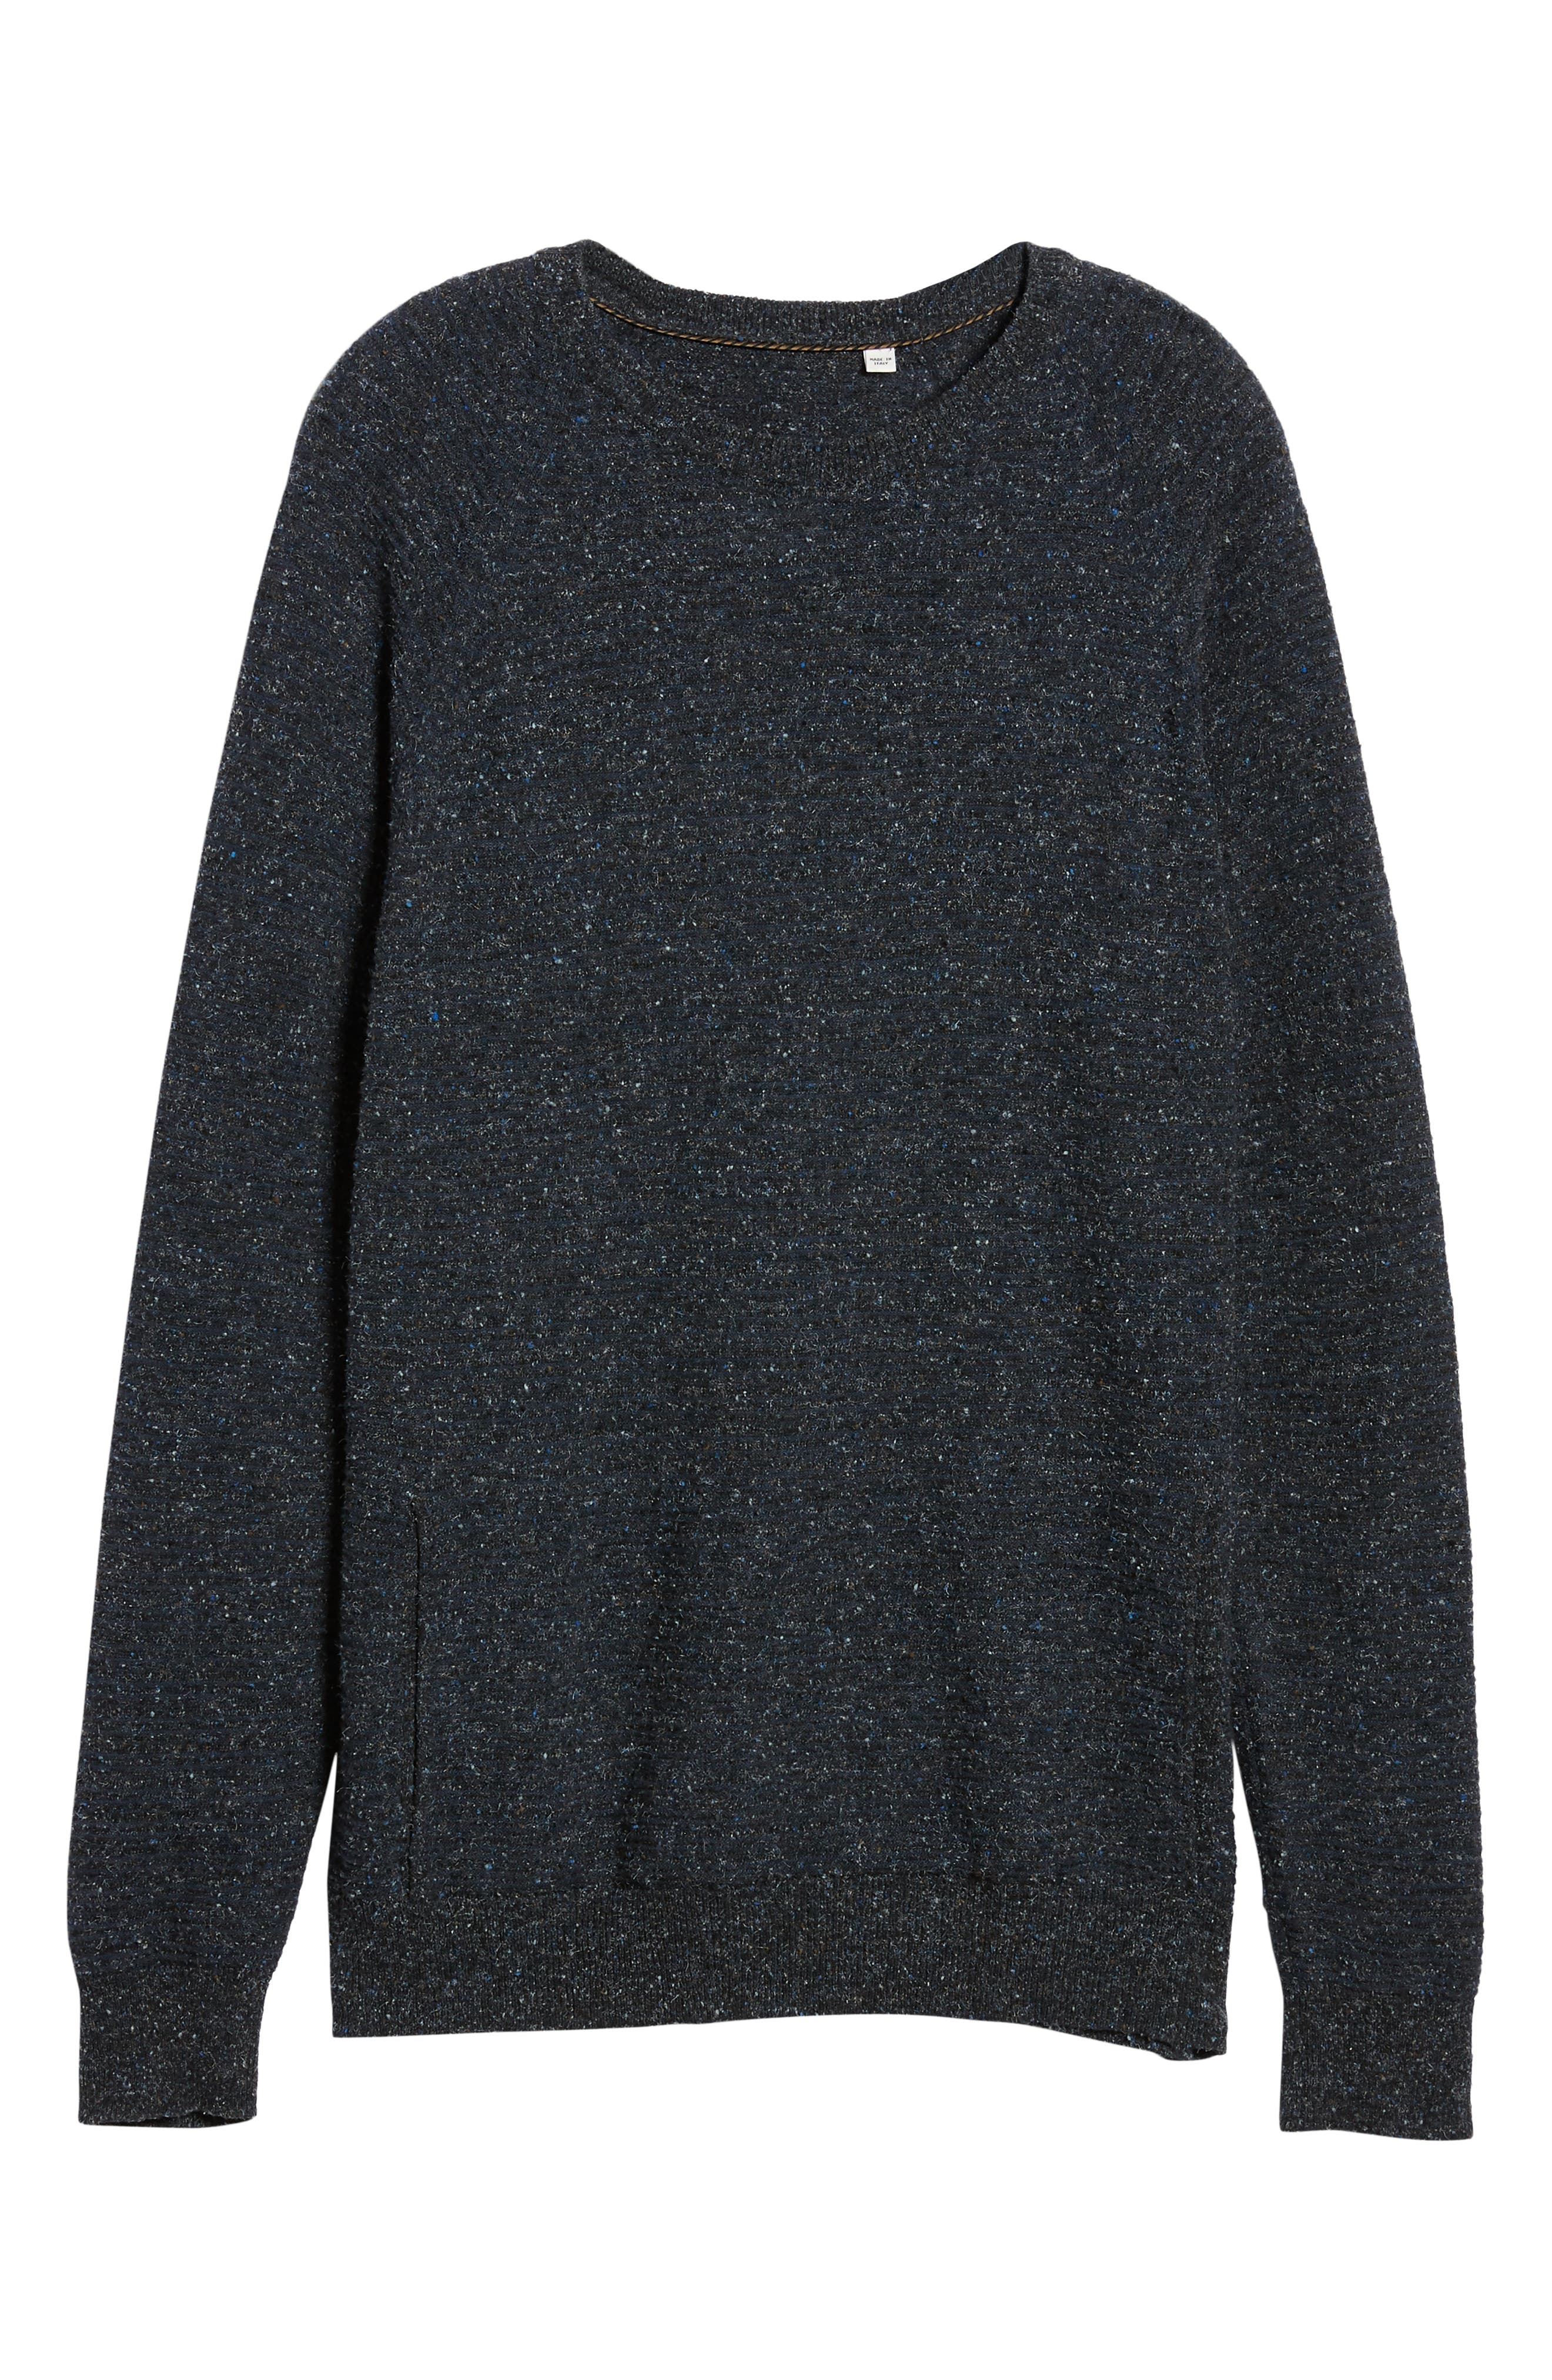 Speckle Stripe Sweater,                             Alternate thumbnail 6, color,                             NAVY/ CHARCOAL